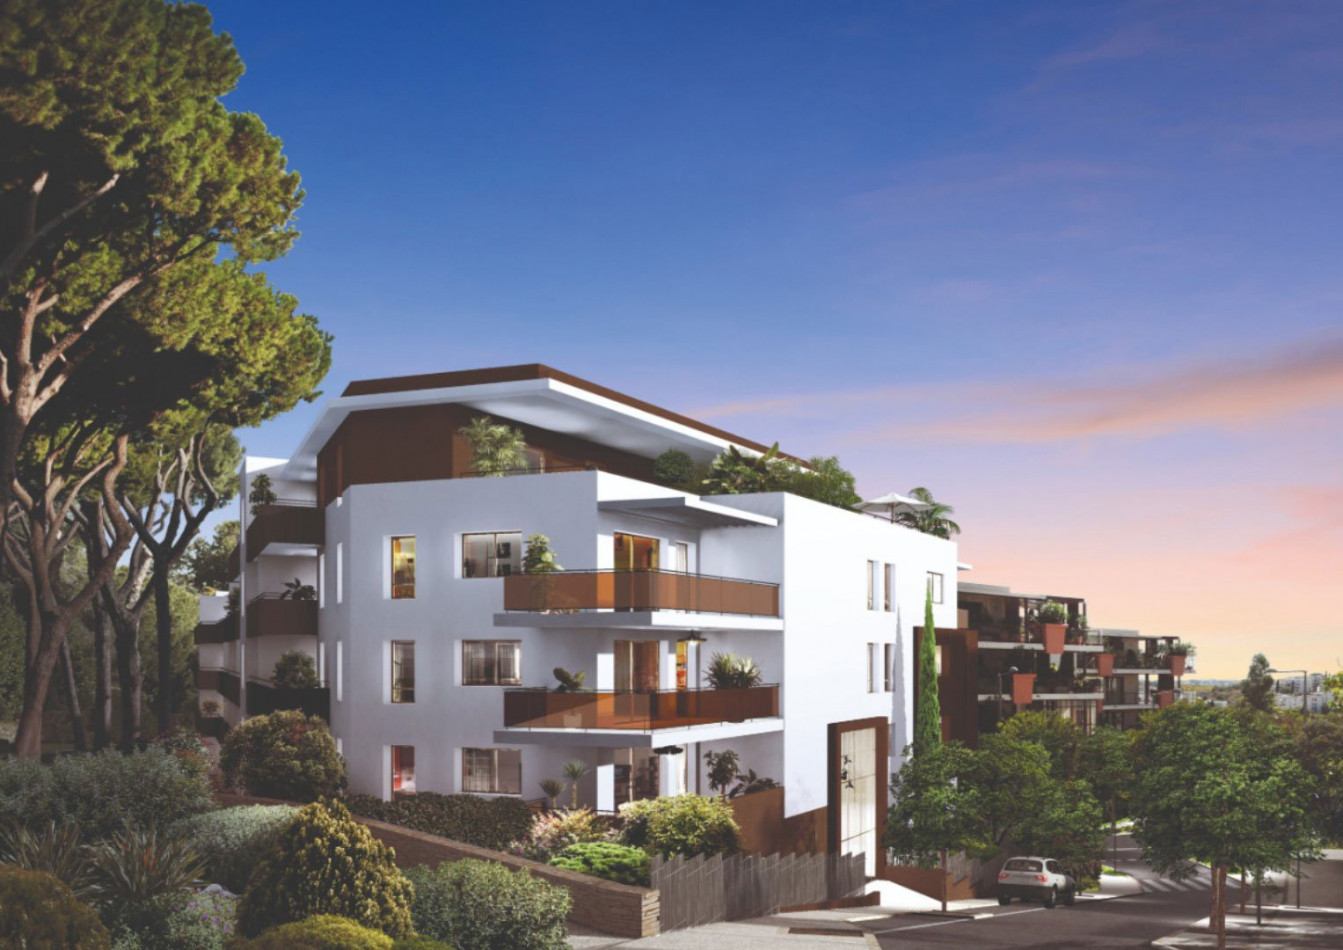 A vendre Montpellier 34505724 Pierre blanche immobilier